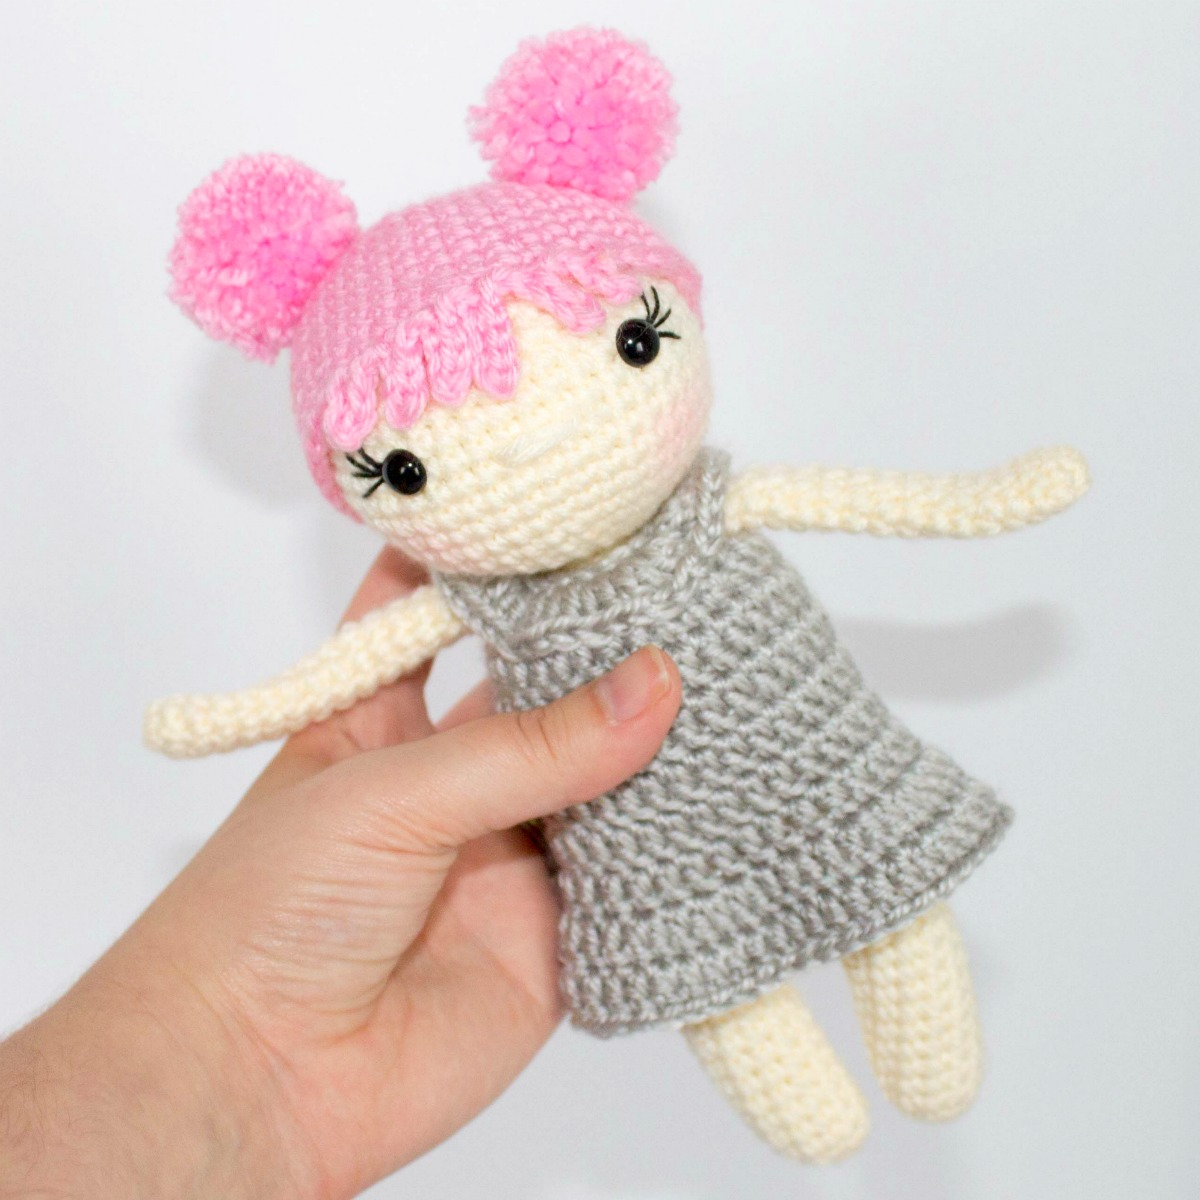 Amigurumi Doll Body Pattern, Crochet Mini Amigurumi Doll, Little ... | 1200x1200